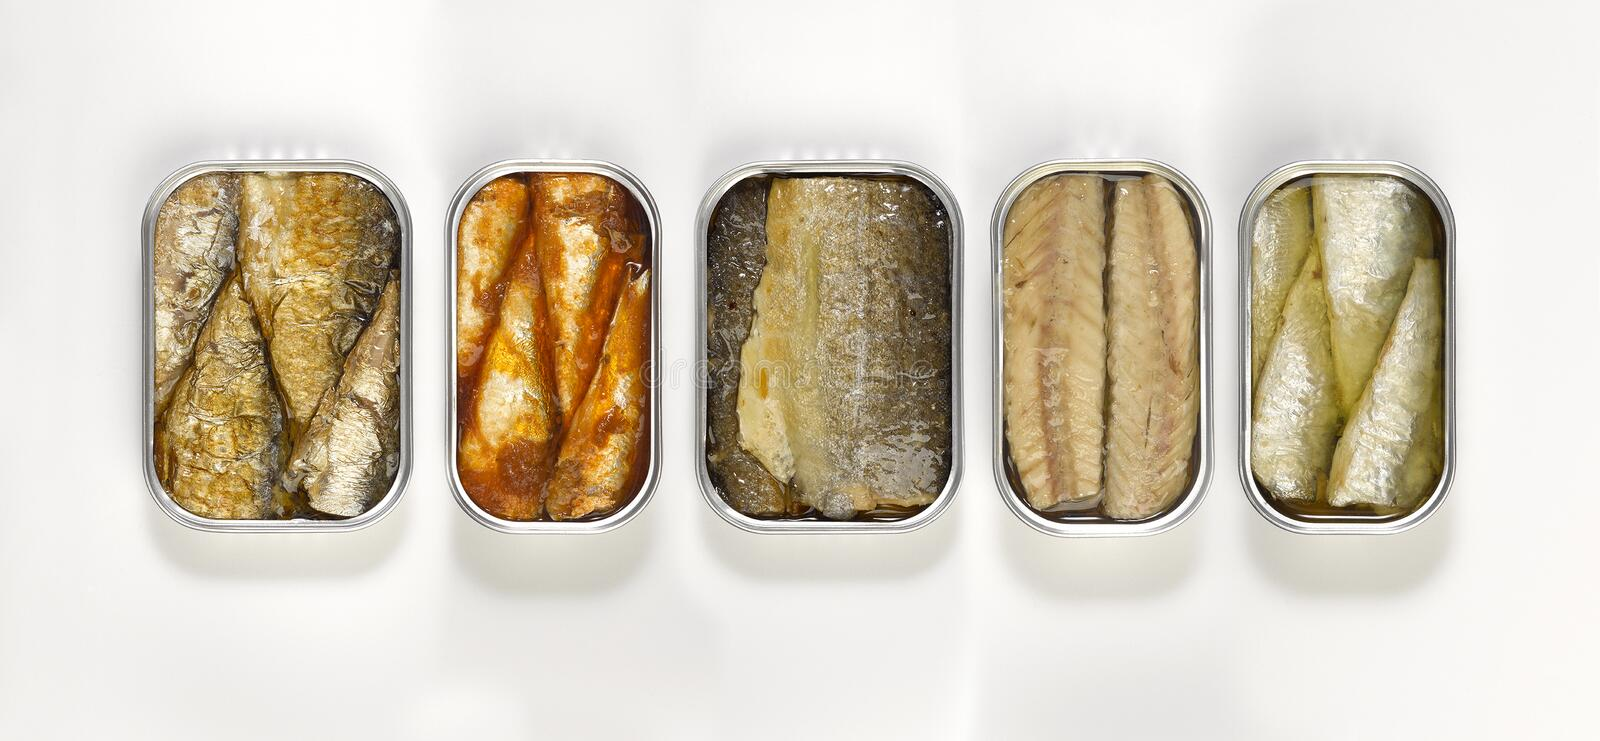 Food - Canned Fish royalty free stock photos